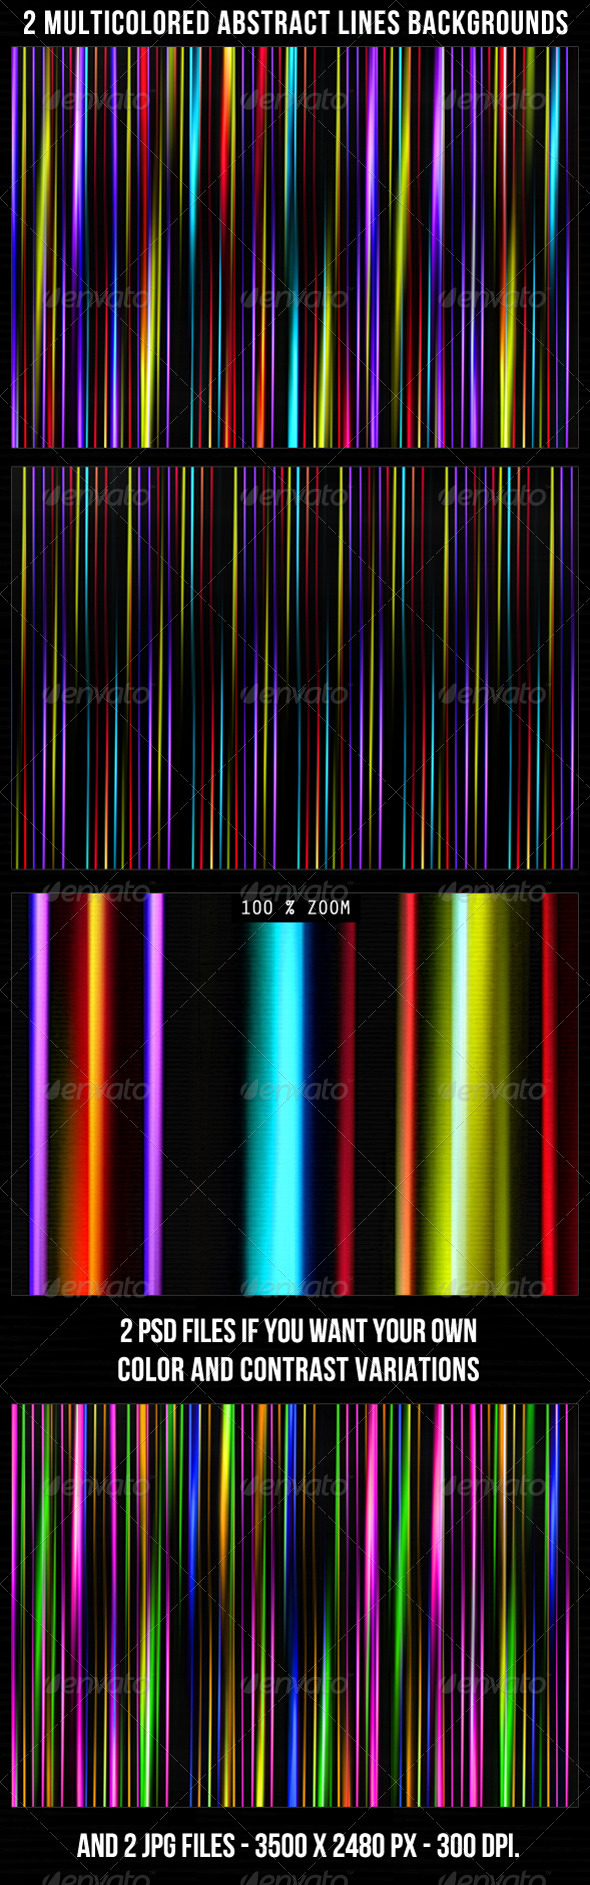 2 Multicolored Abstract Backgrounds